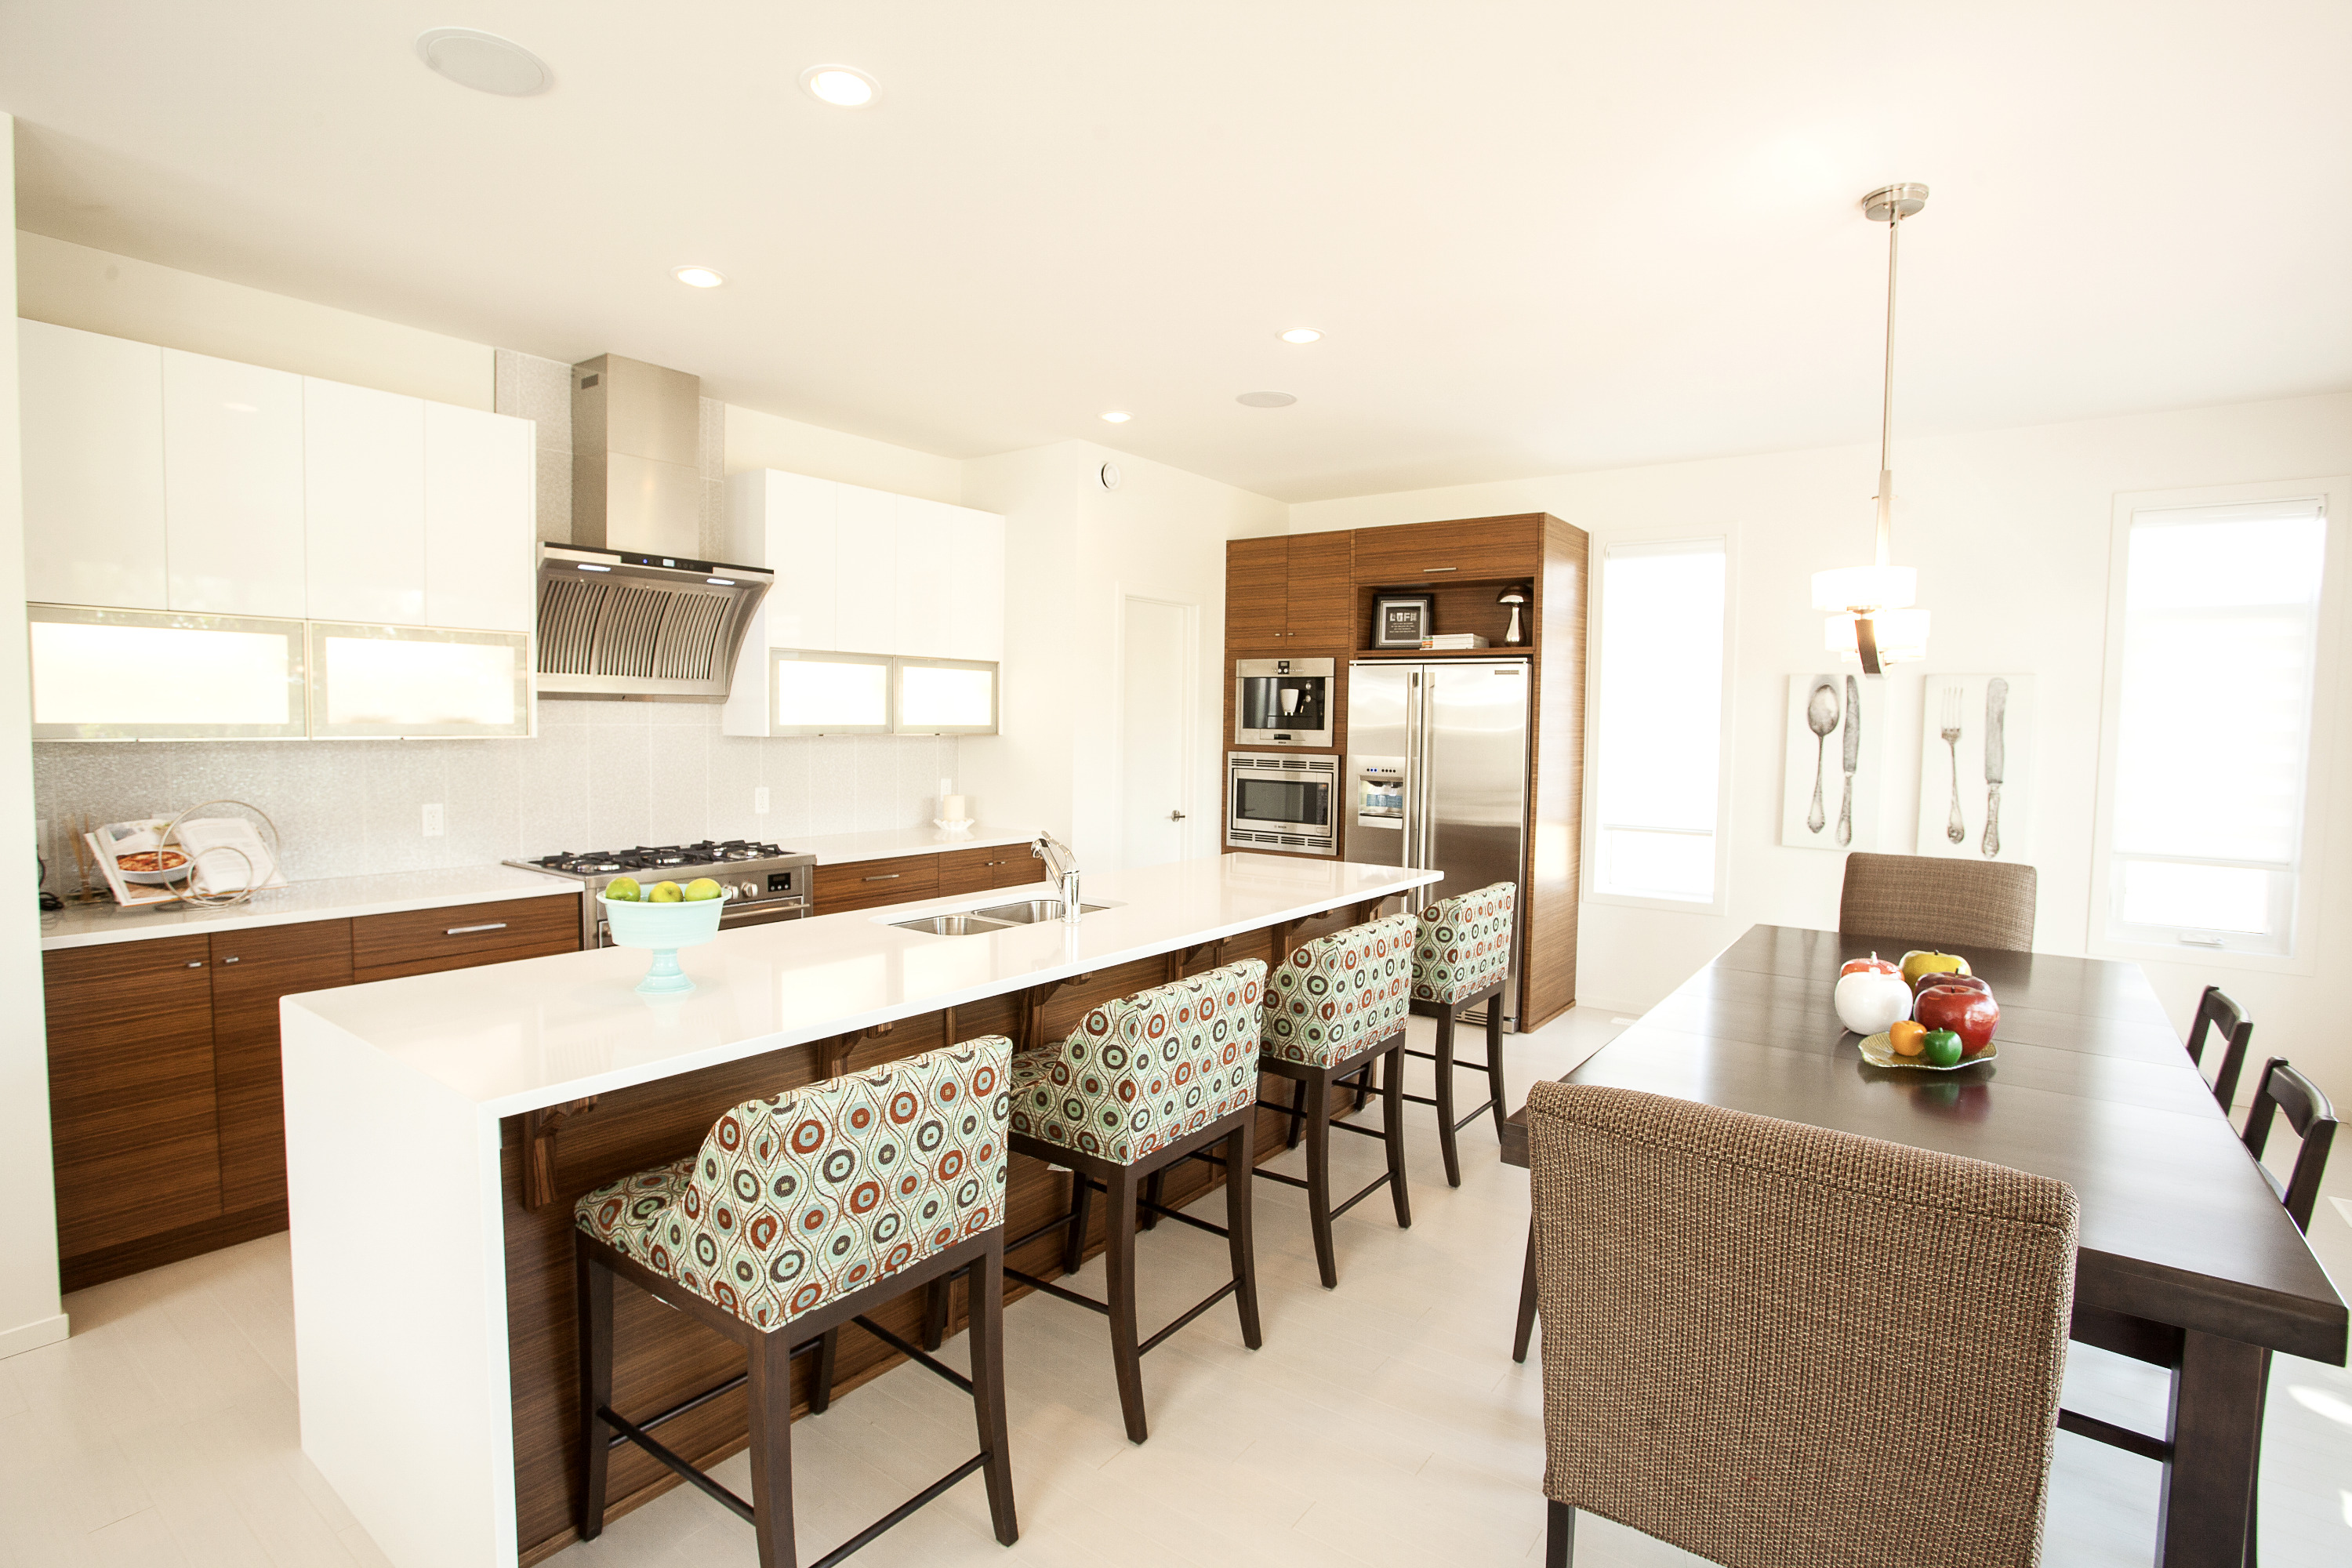 118Showhome-014_edited